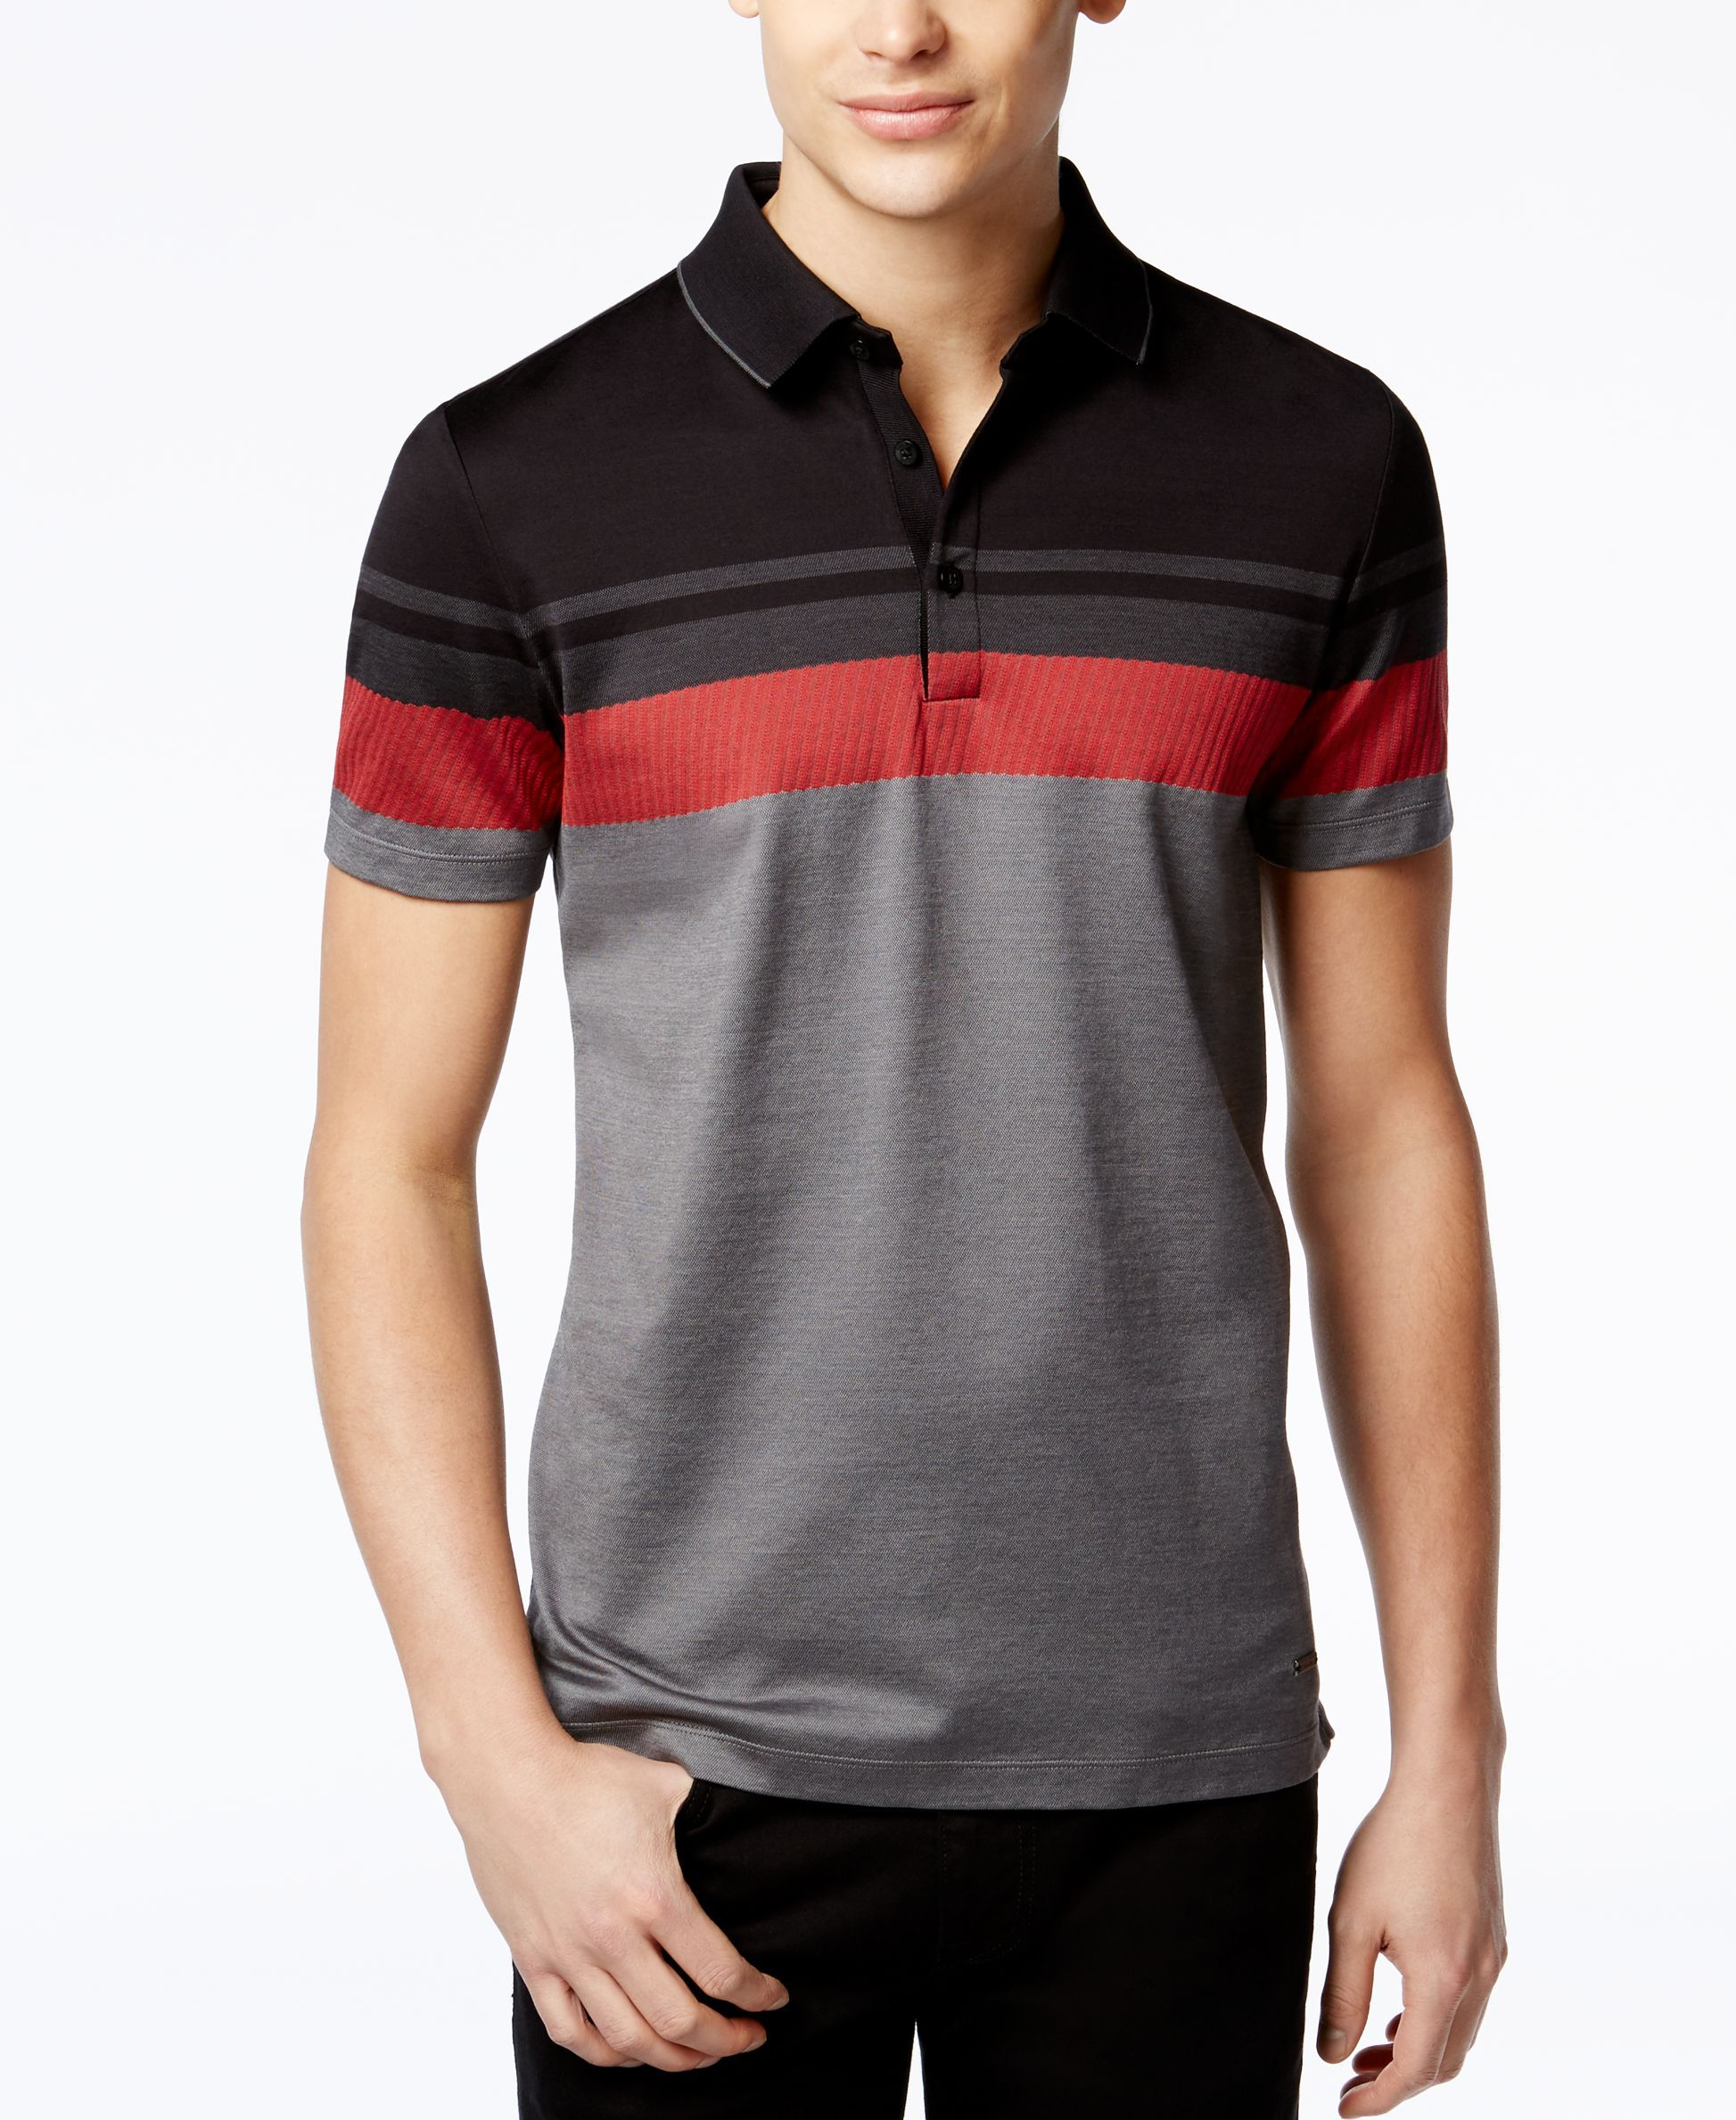 e3da138e8a Best Designer Polo Shirts  Calvin Klein. Premium Colorblocked Polo Shirt